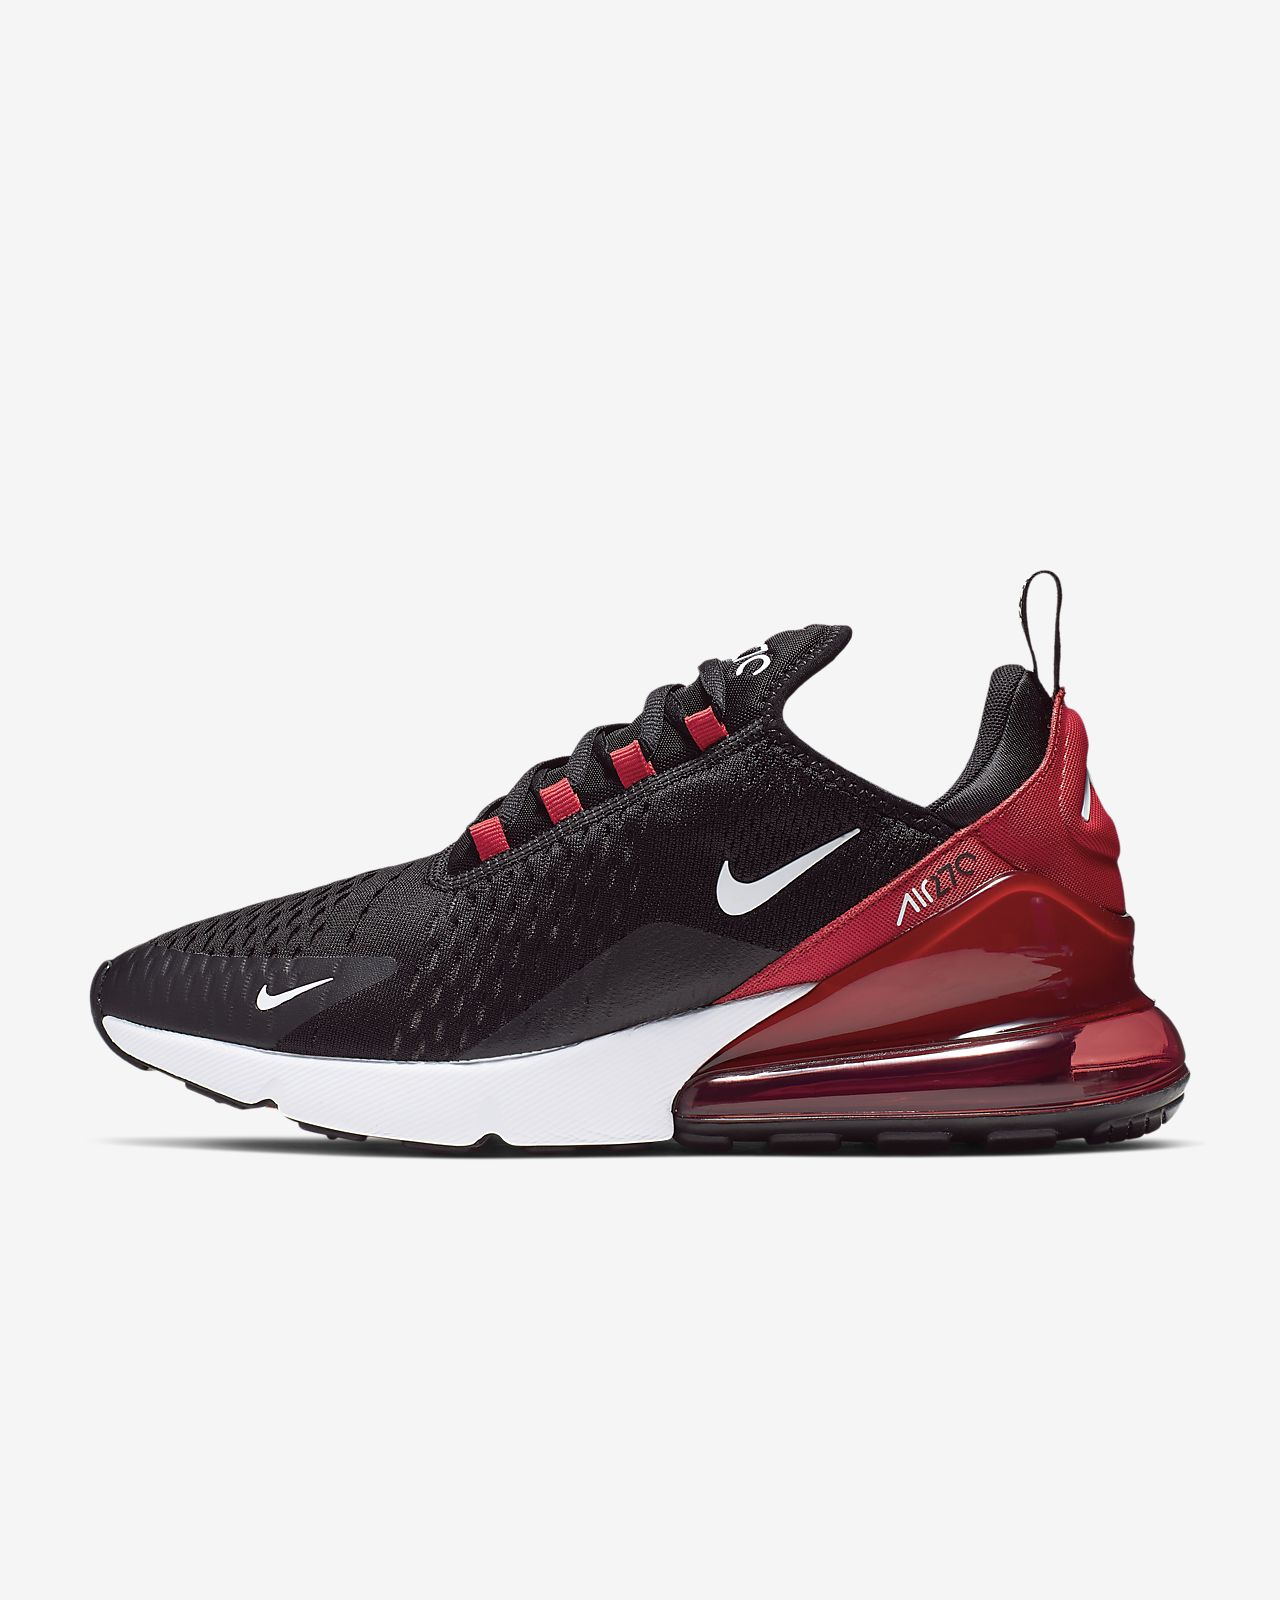 ab5c98a8310cbe Nike Air Max 270 Men s Shoe. Nike.com GB